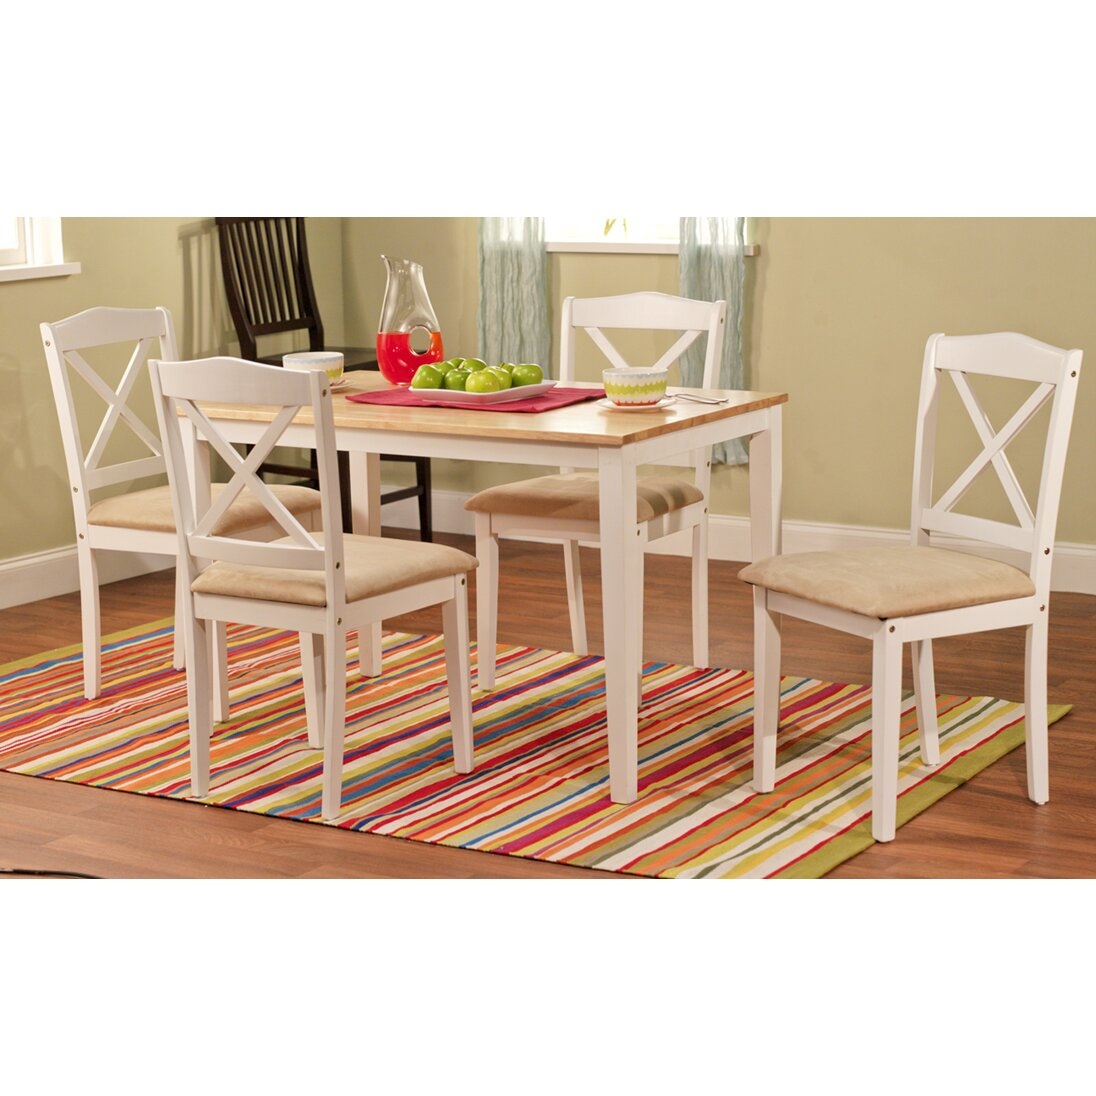 august grove scarlett 5 piece dining set reviews wayfair way